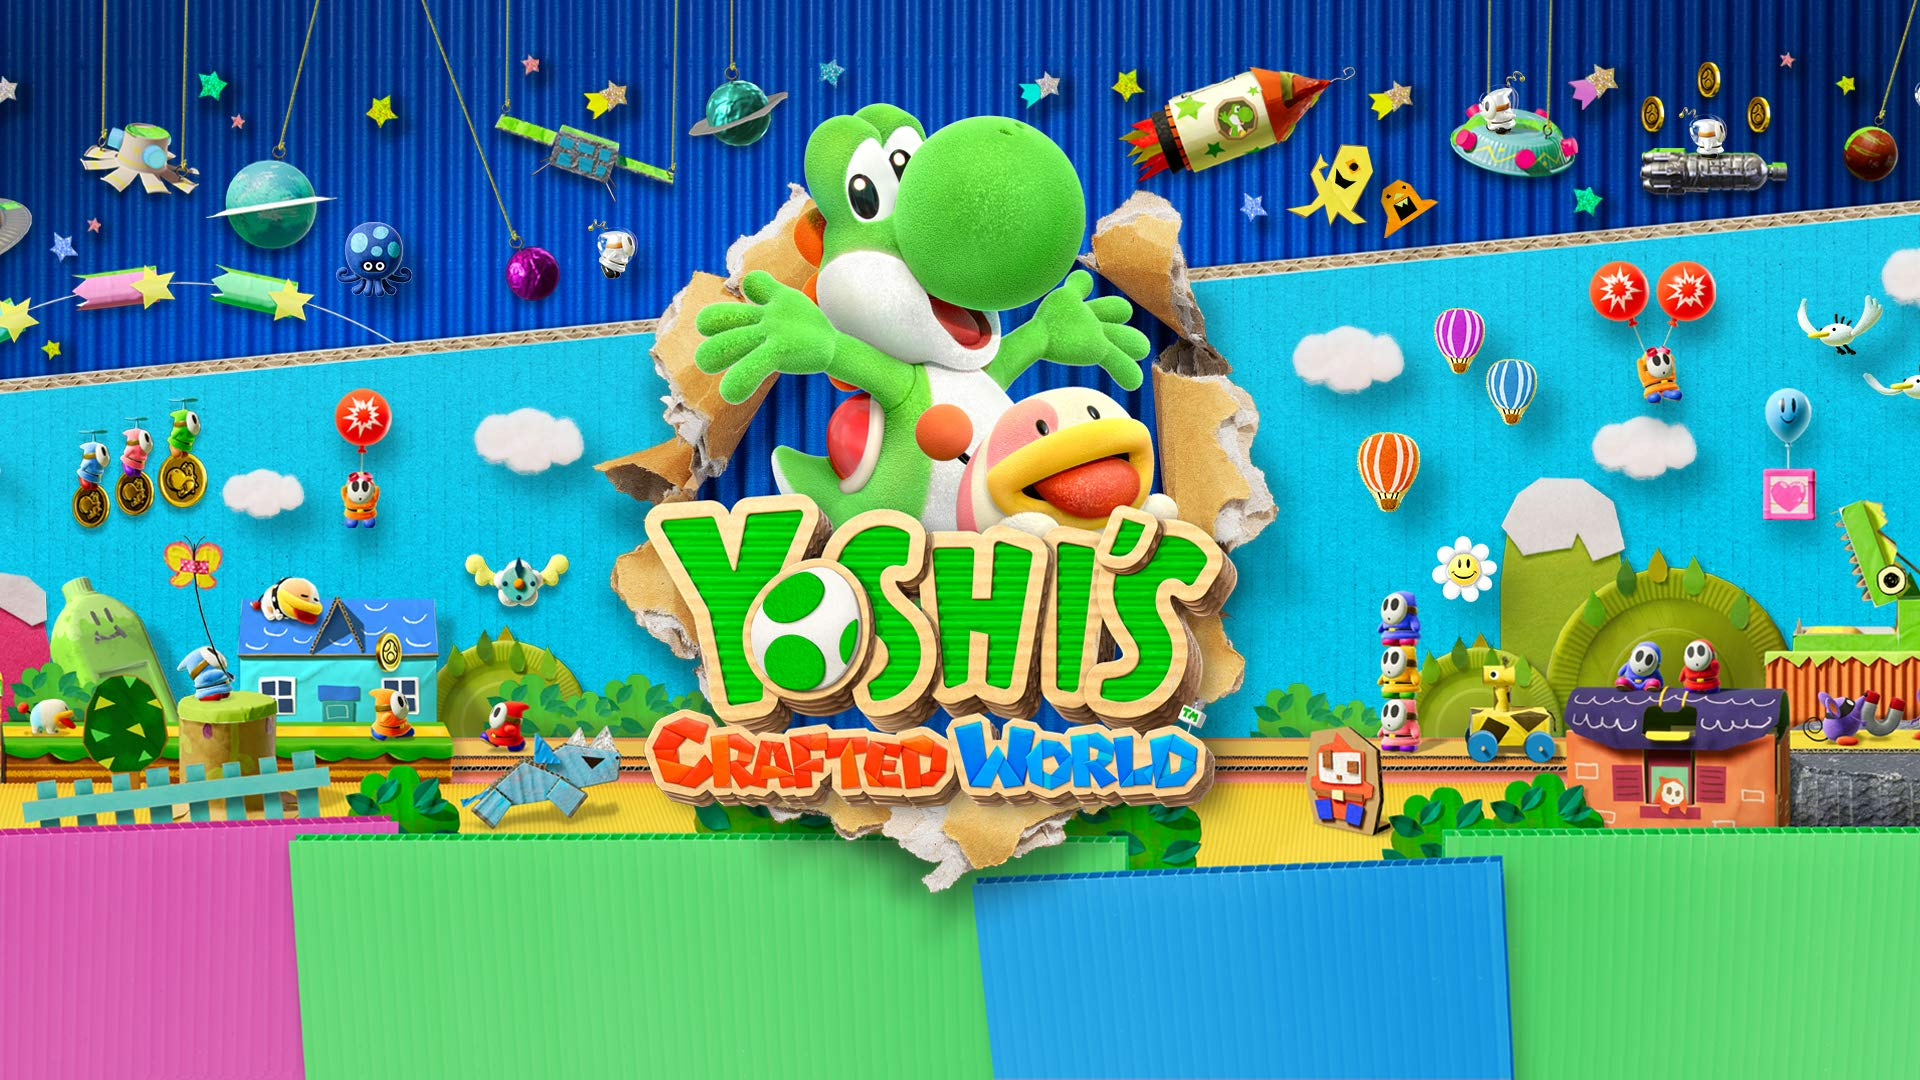 yoshis crafted world video game hd wallpaper 67347